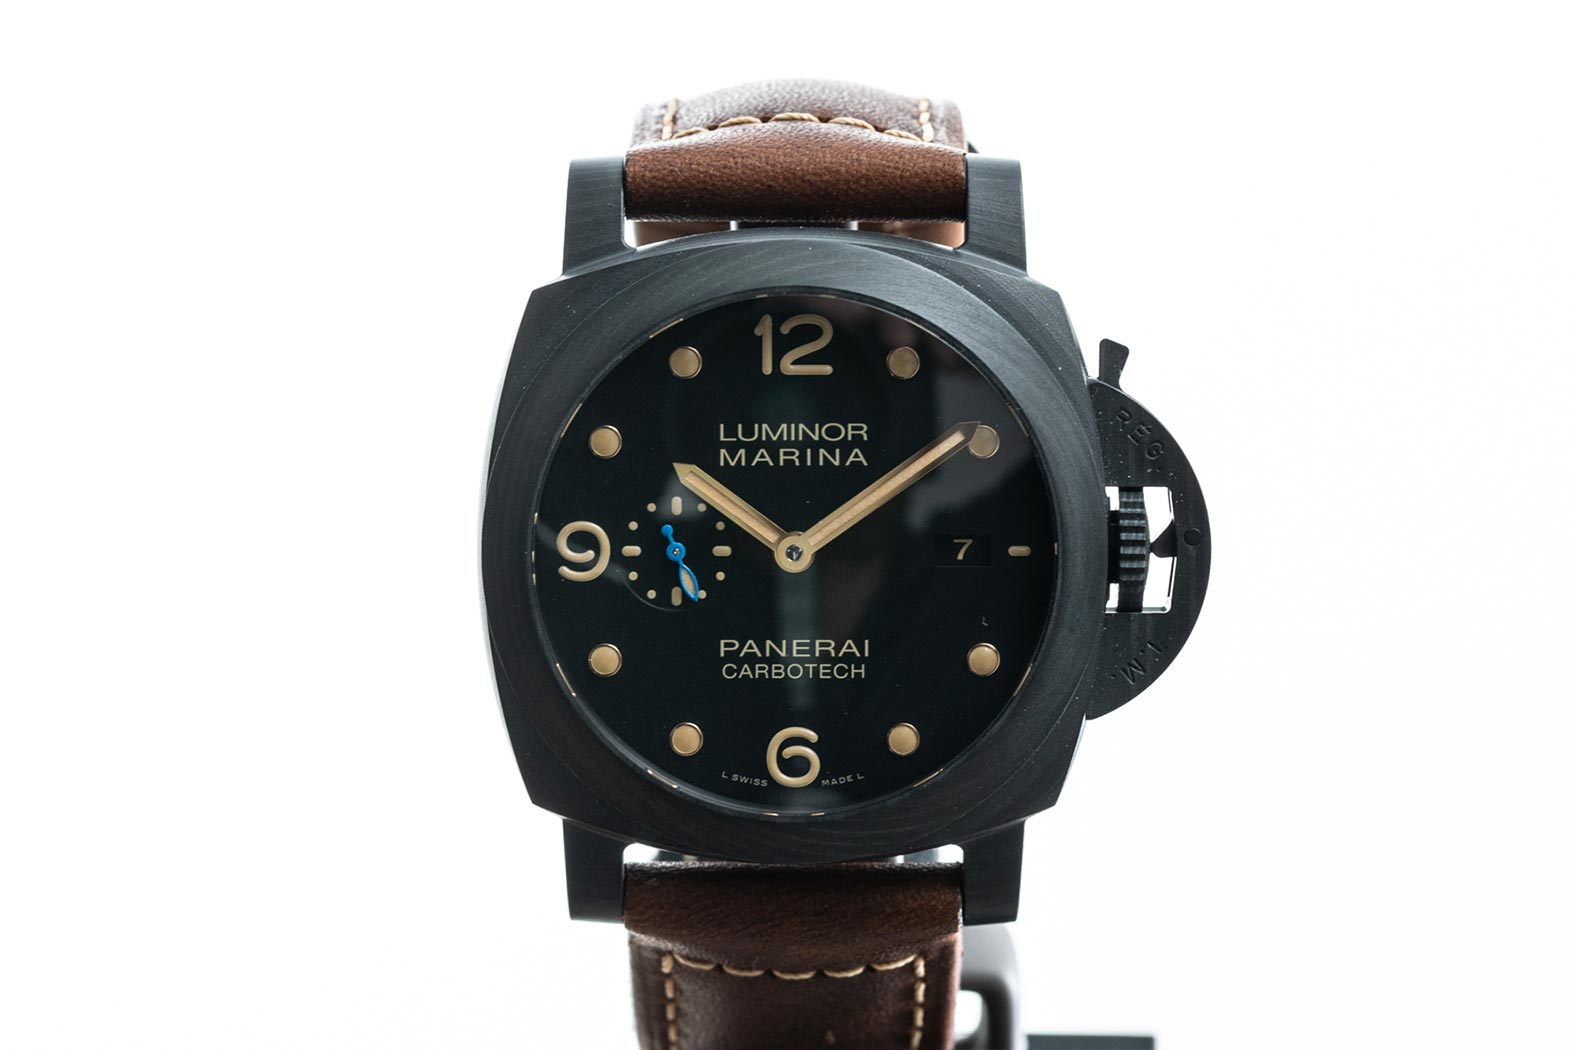 panerai - luminor marina carbotech